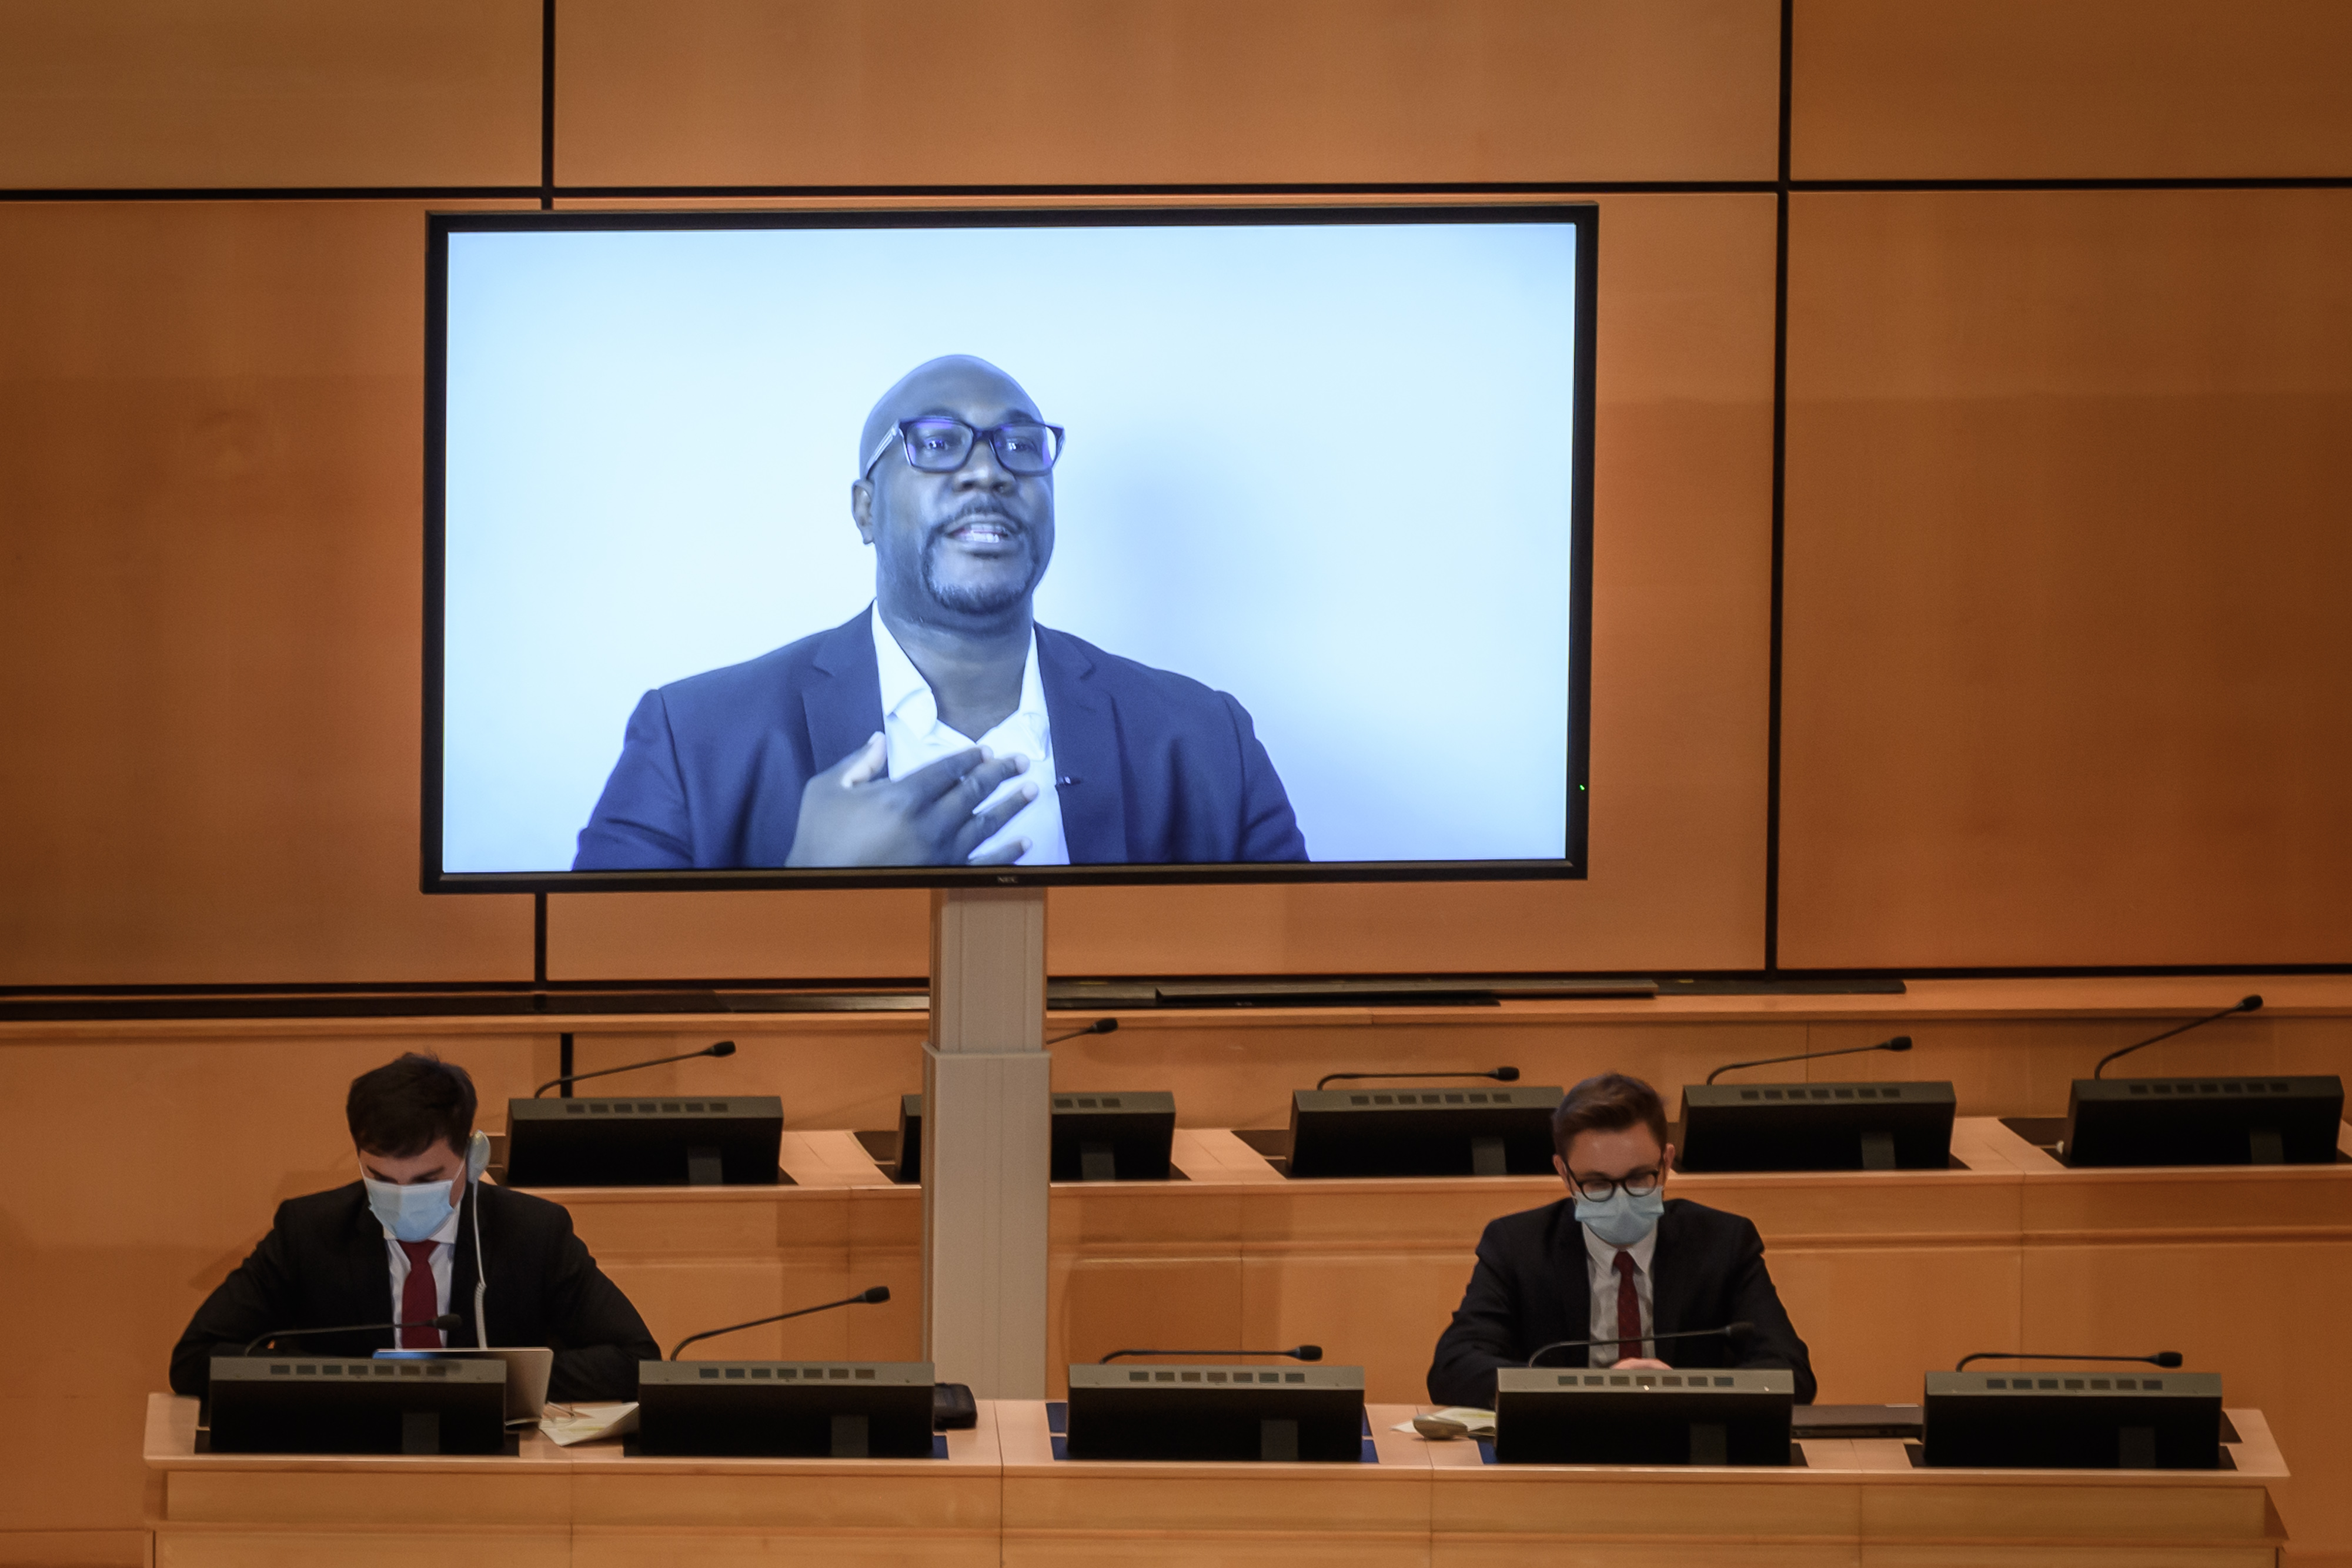 """George Floyd's brother Philonise is seen on a TV screen during his speech at the opening of an urgent debate on """"systemic racism"""" in the United States and beyond at the Human Rights Council on June 17, 2020 in Geneva. (Photo by FABRICE COFFRINI/AFP via Getty Images)"""